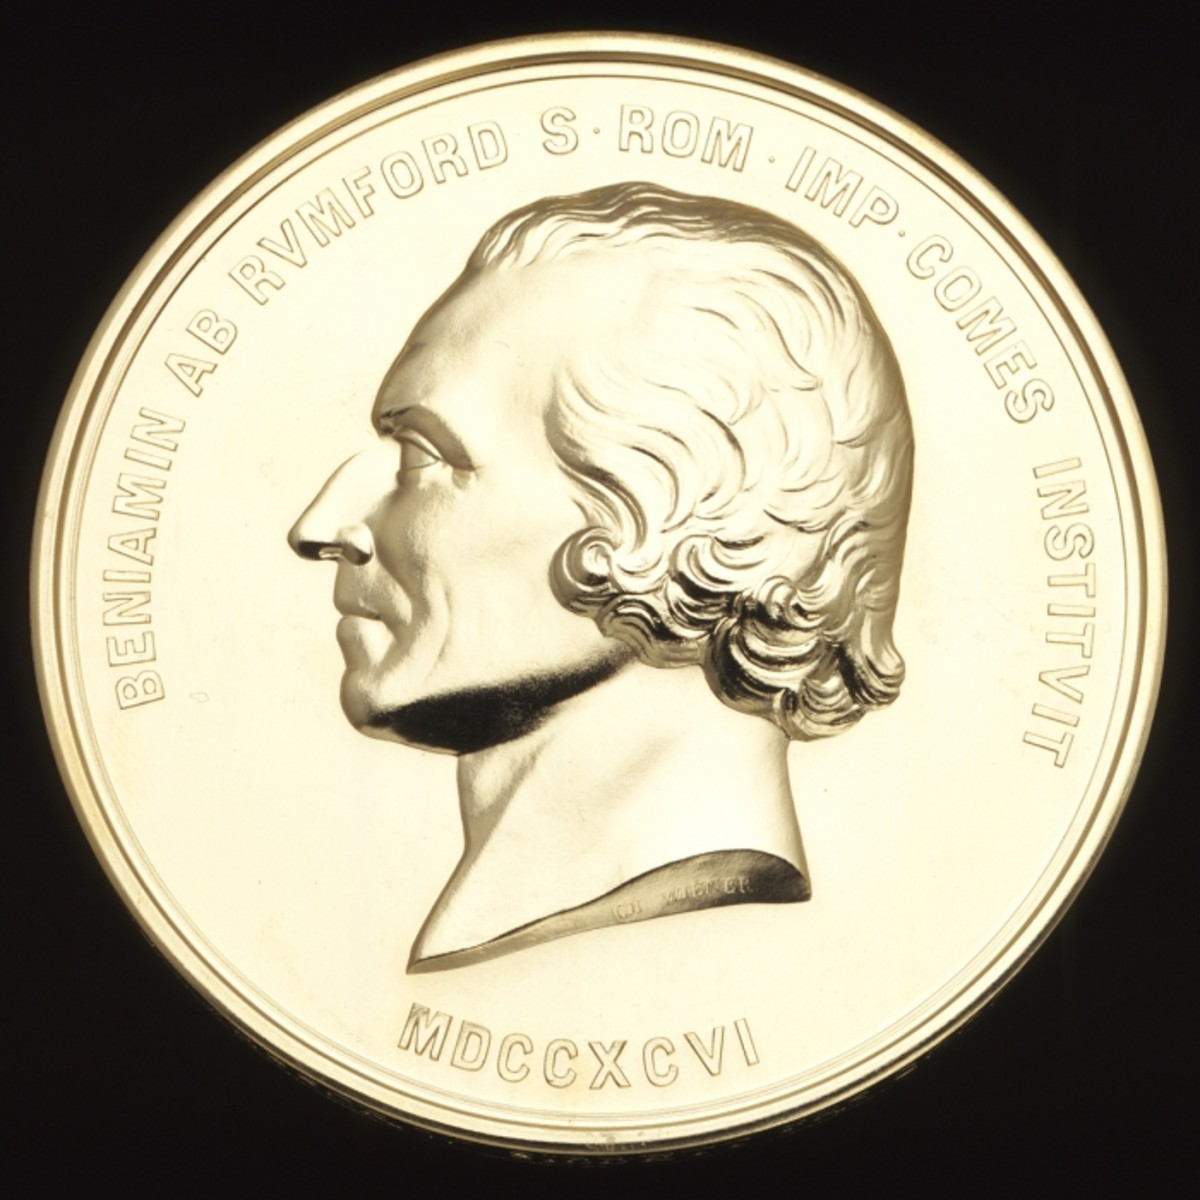 Rumford Medal.  The Royal Society has awarded it biennially since the first years of the 19th century; winners have included some of the most famous names in science.  Image courtesy Royal Society.